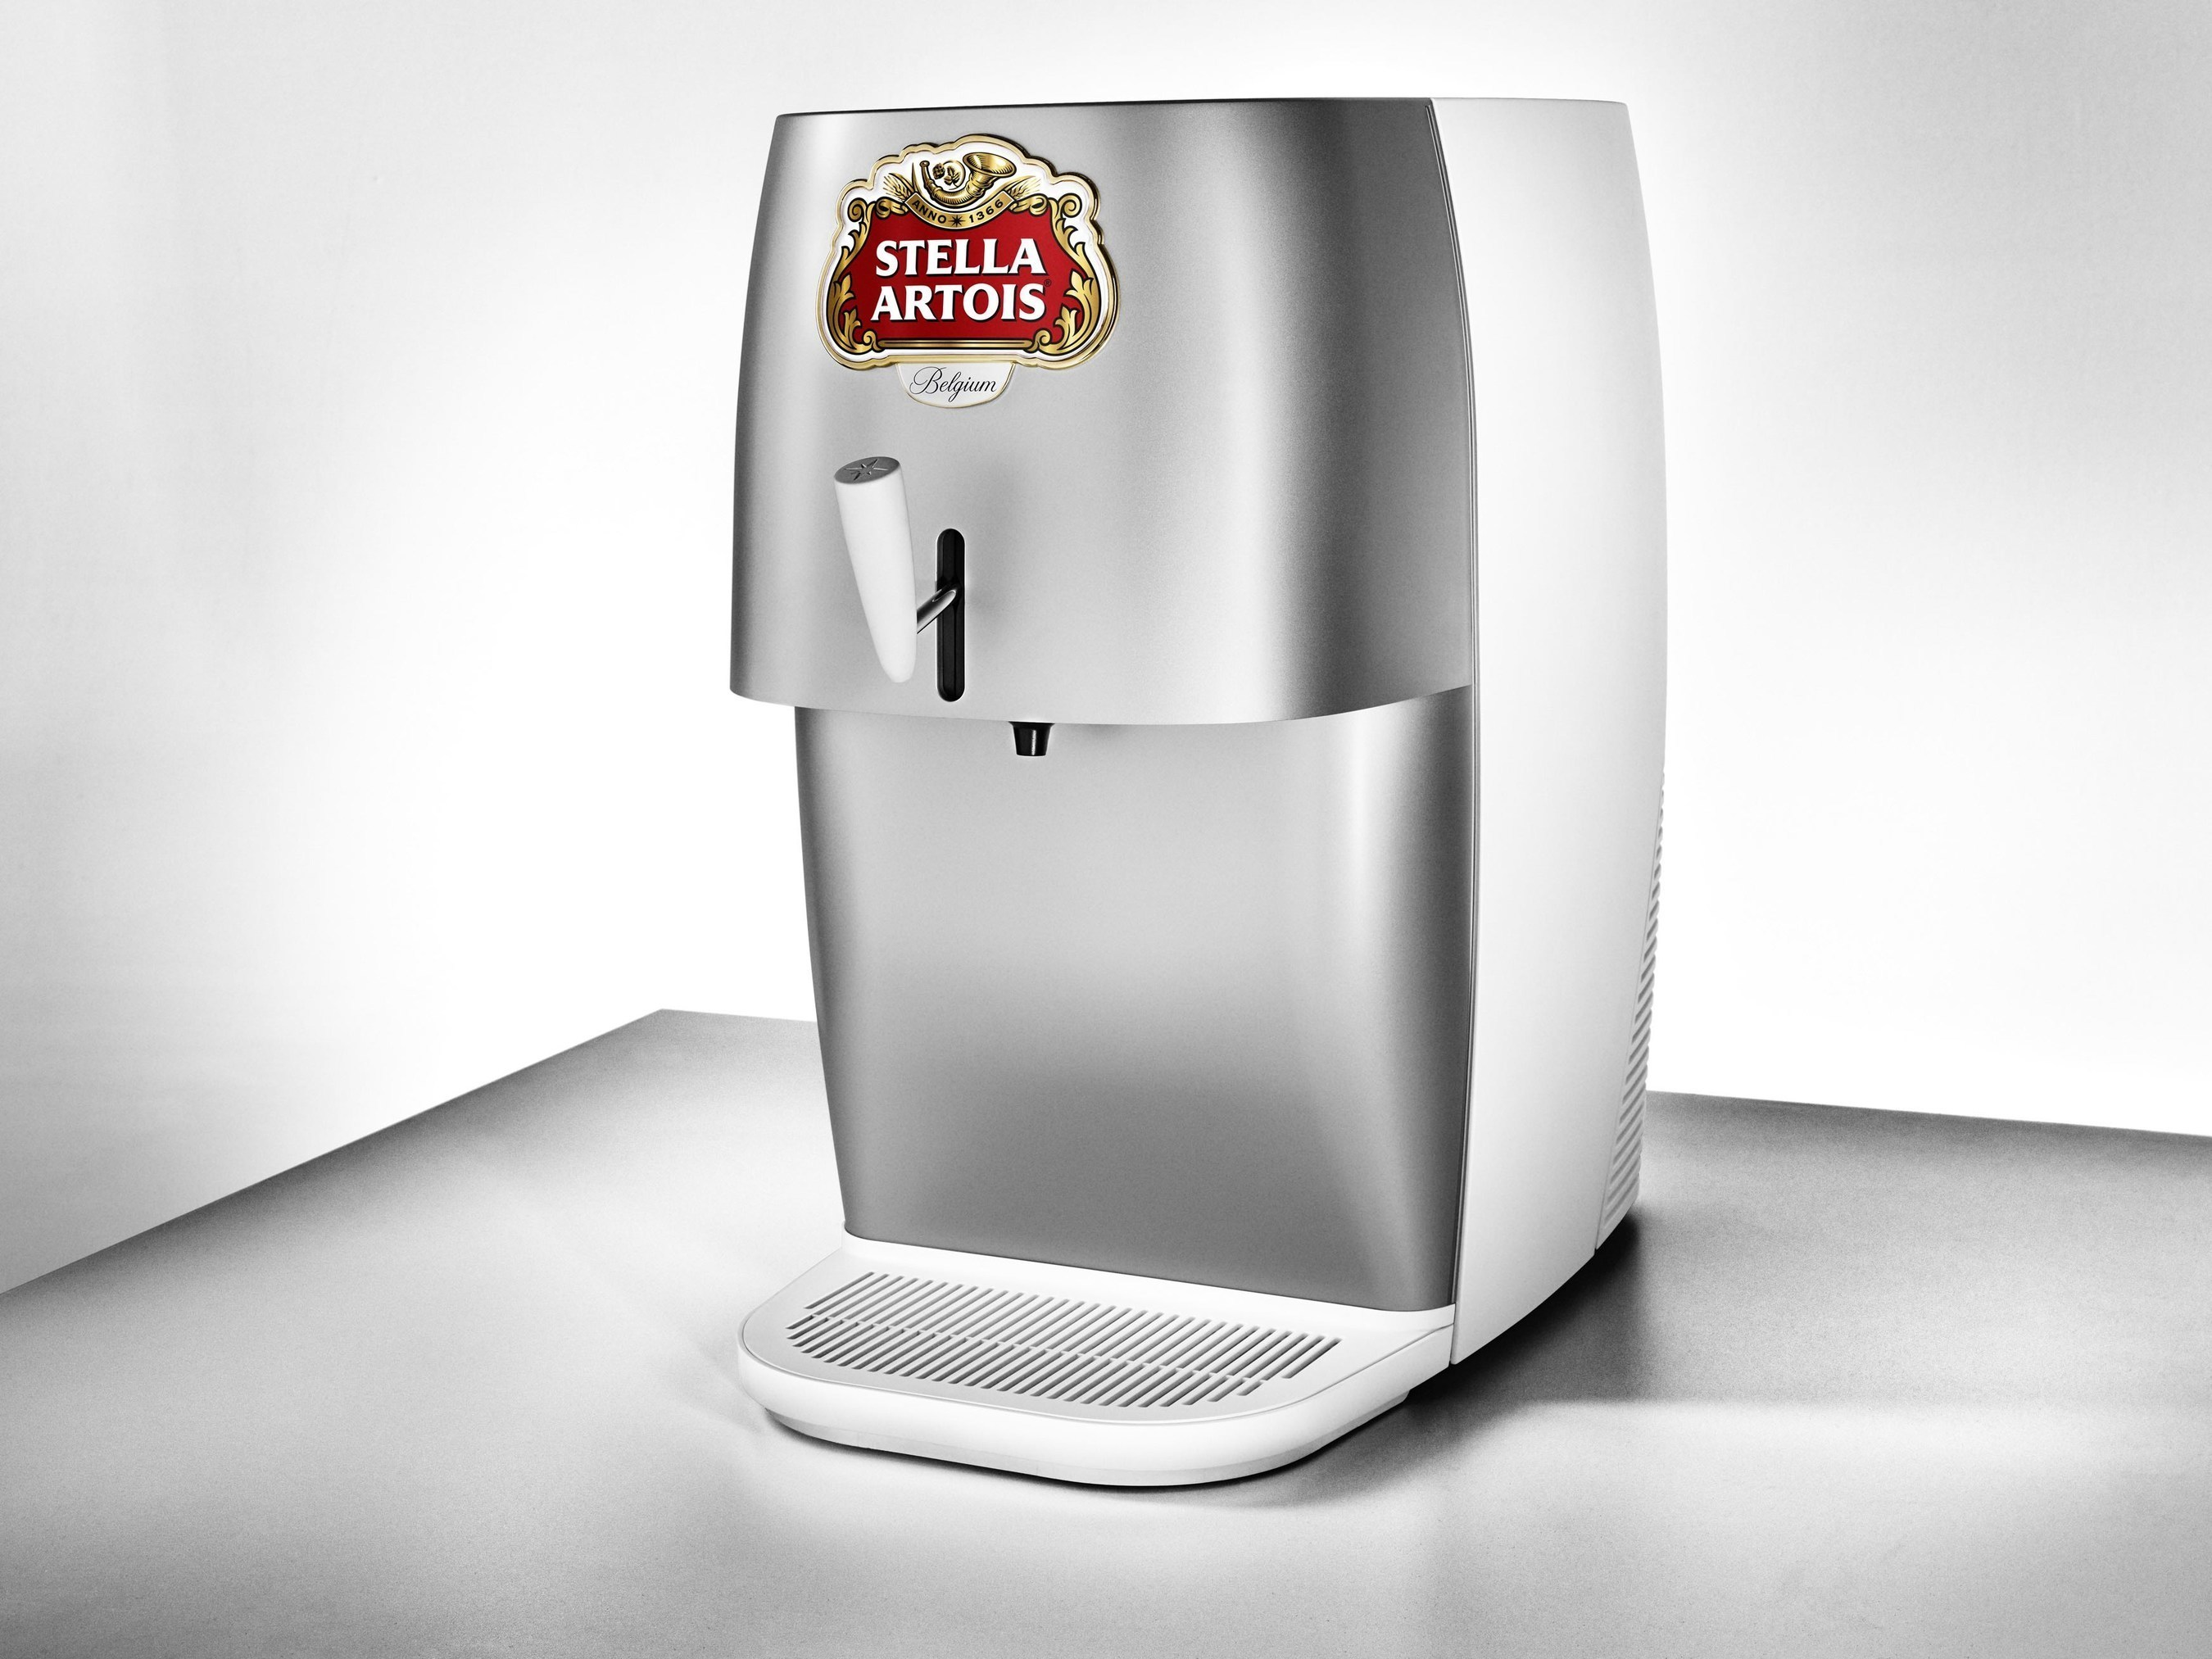 Stella Artois Rolls Out Countertop Draft Unit For On